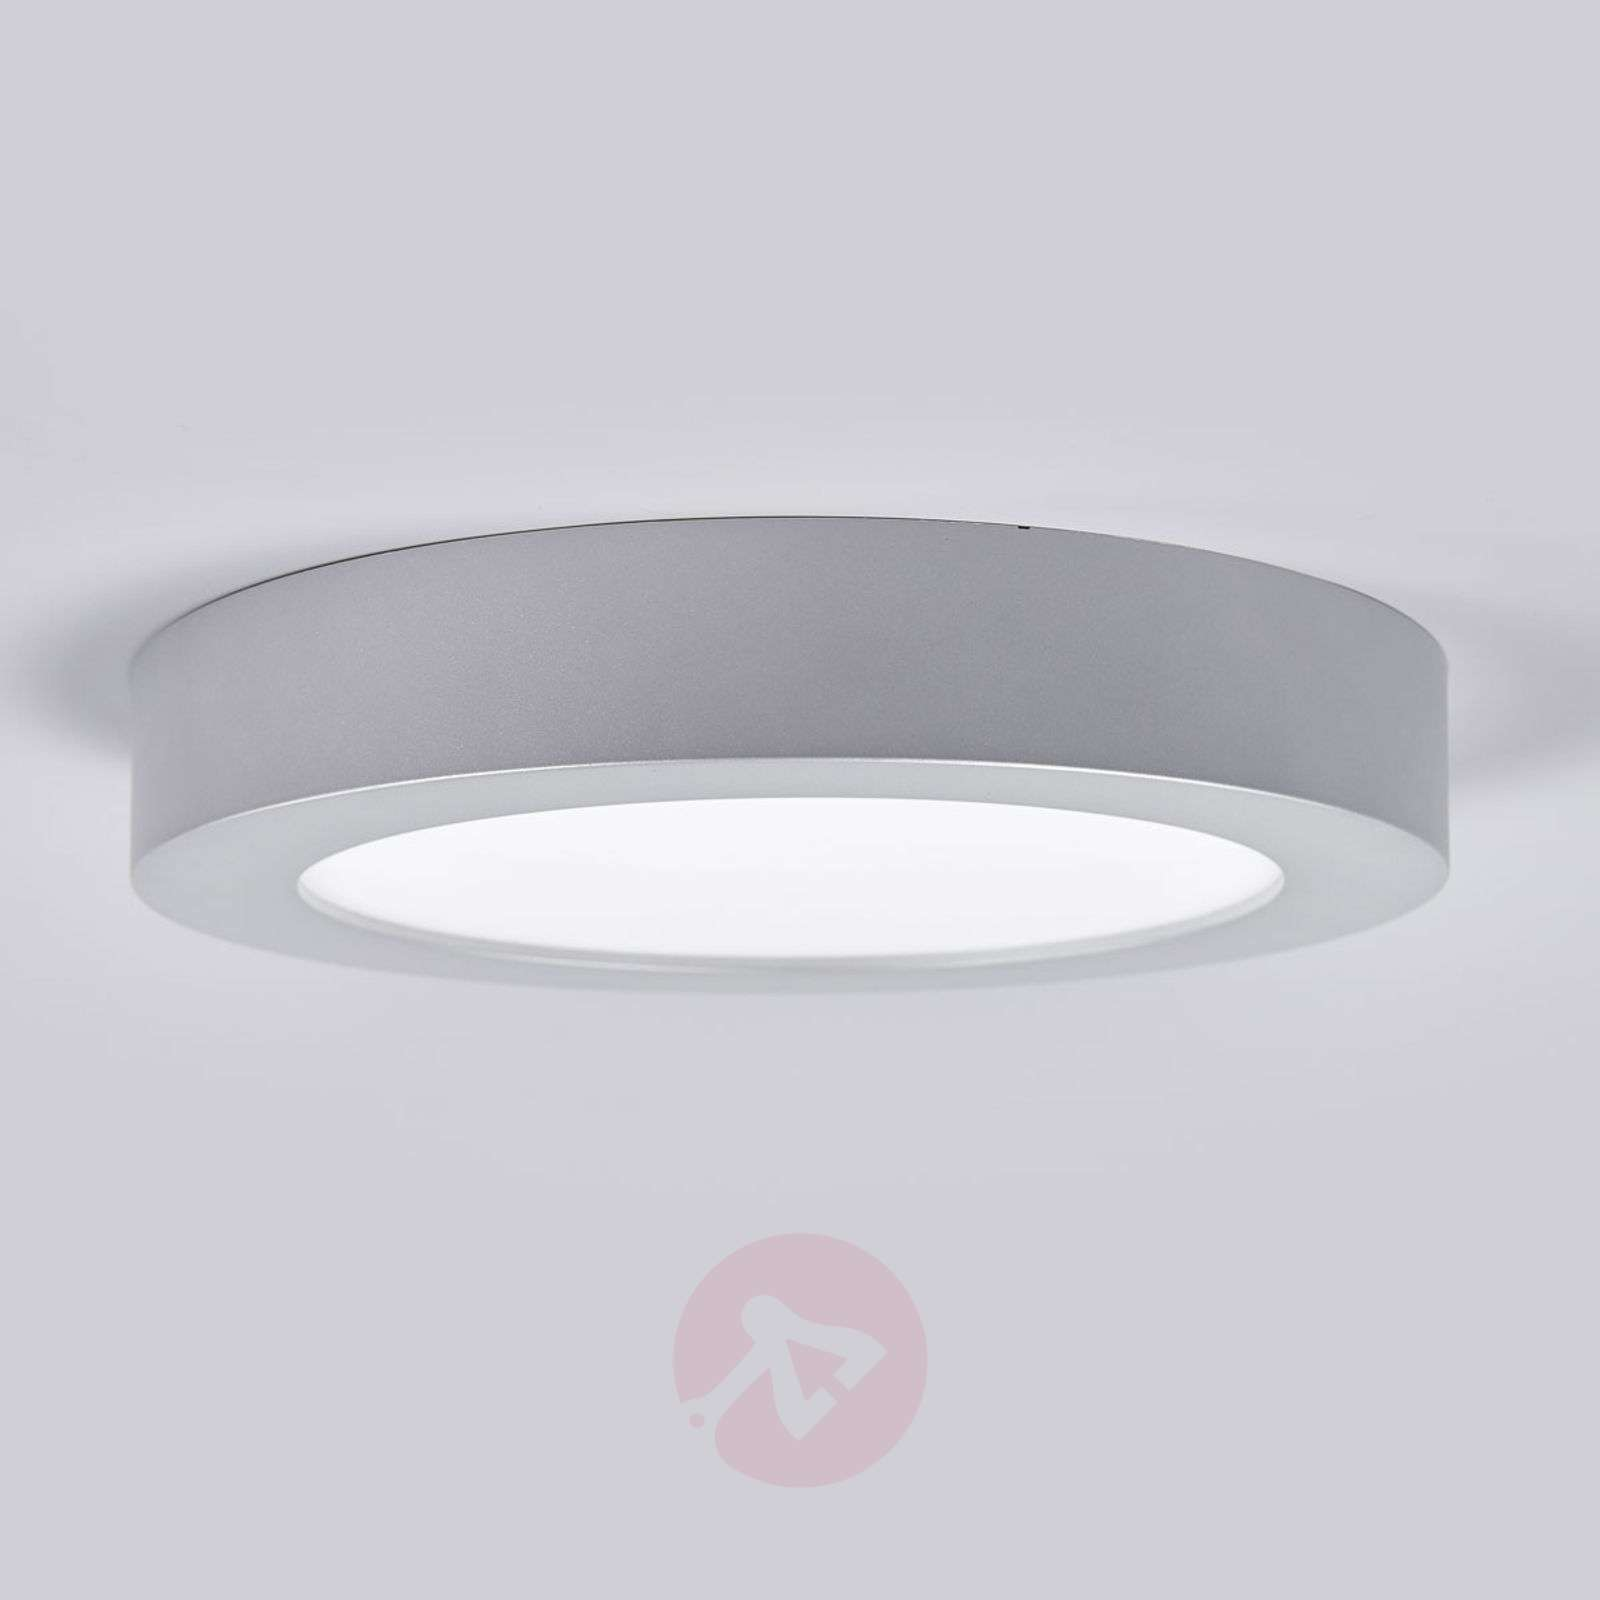 LED ceiling light Marlo for bathrooms, IP44-9978053-02